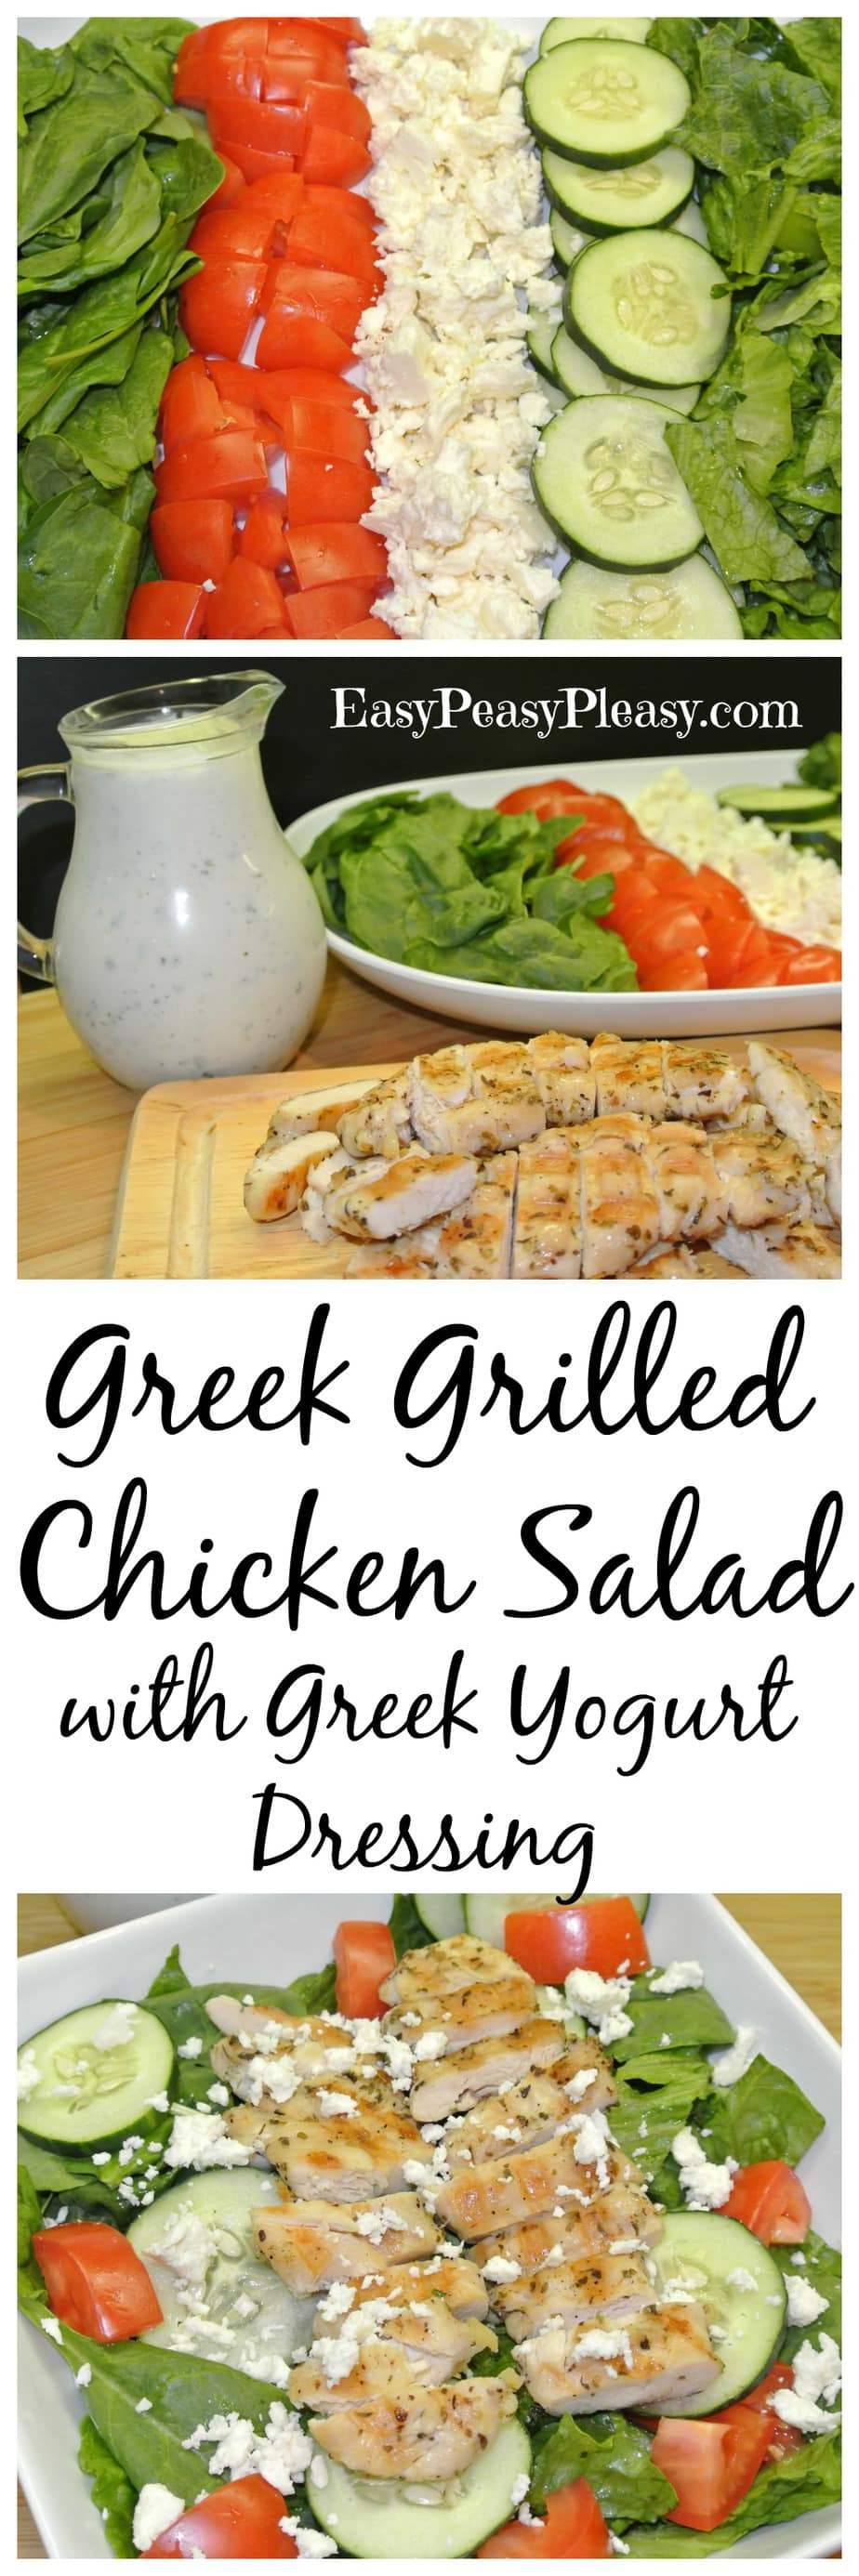 Easy Low Fat Greek Grilled Chicken Salad with homemade Greek Yogurt Dressing